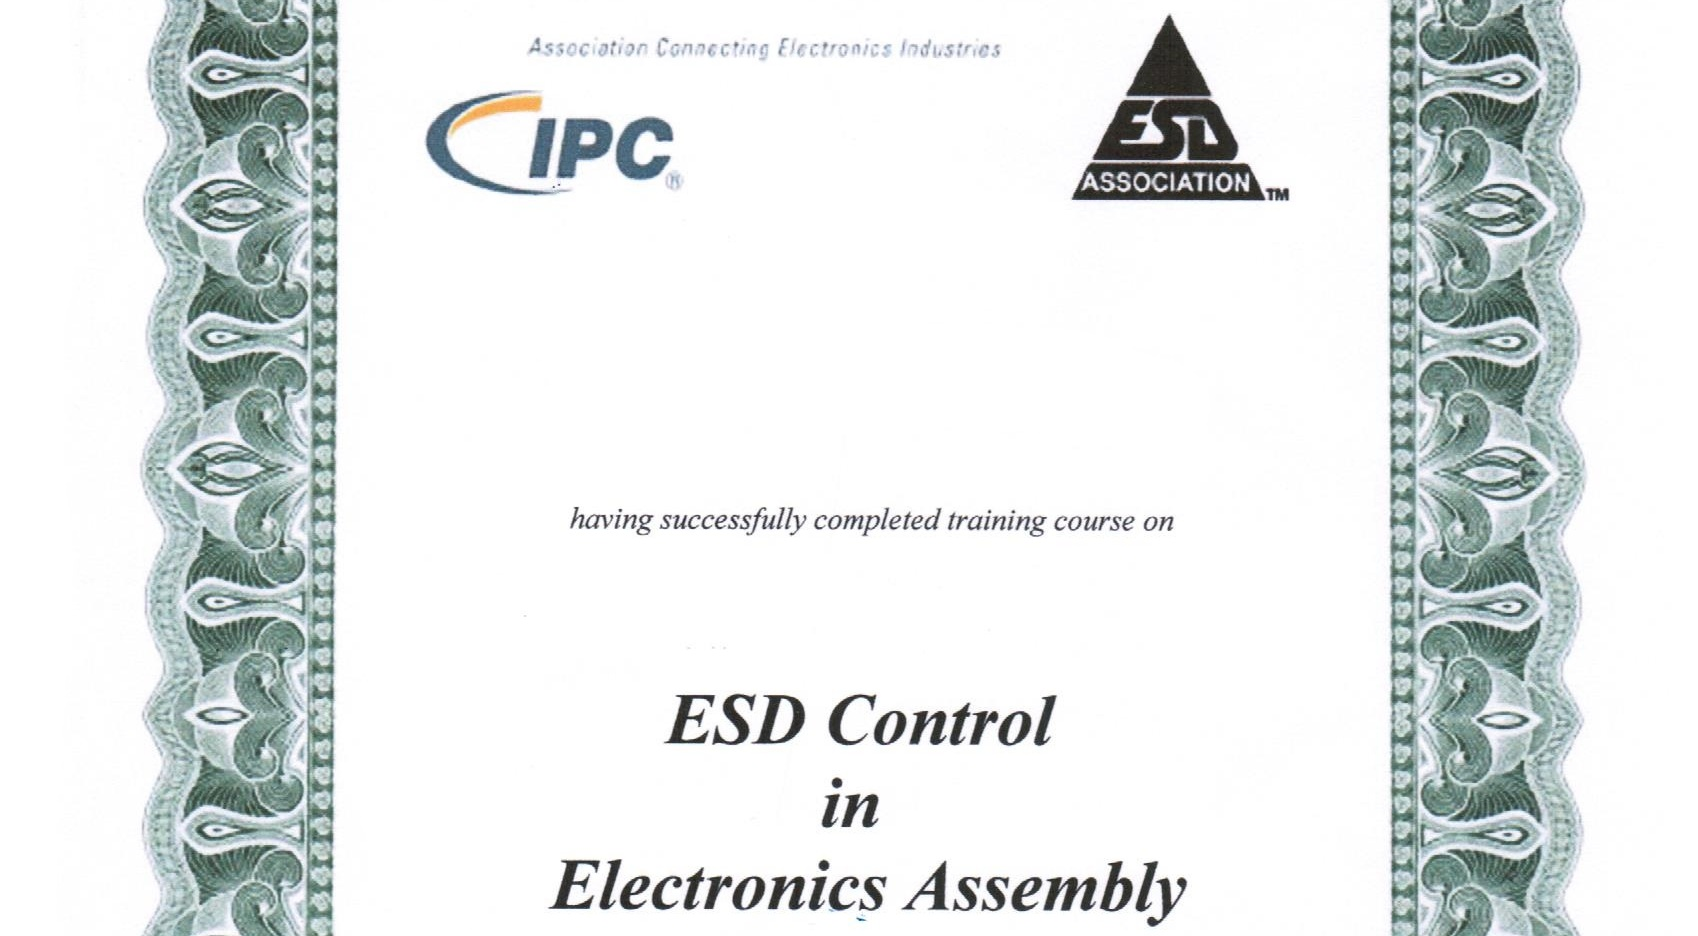 ESD CONTROL İN ELECTRONİCS ASSEMBLY